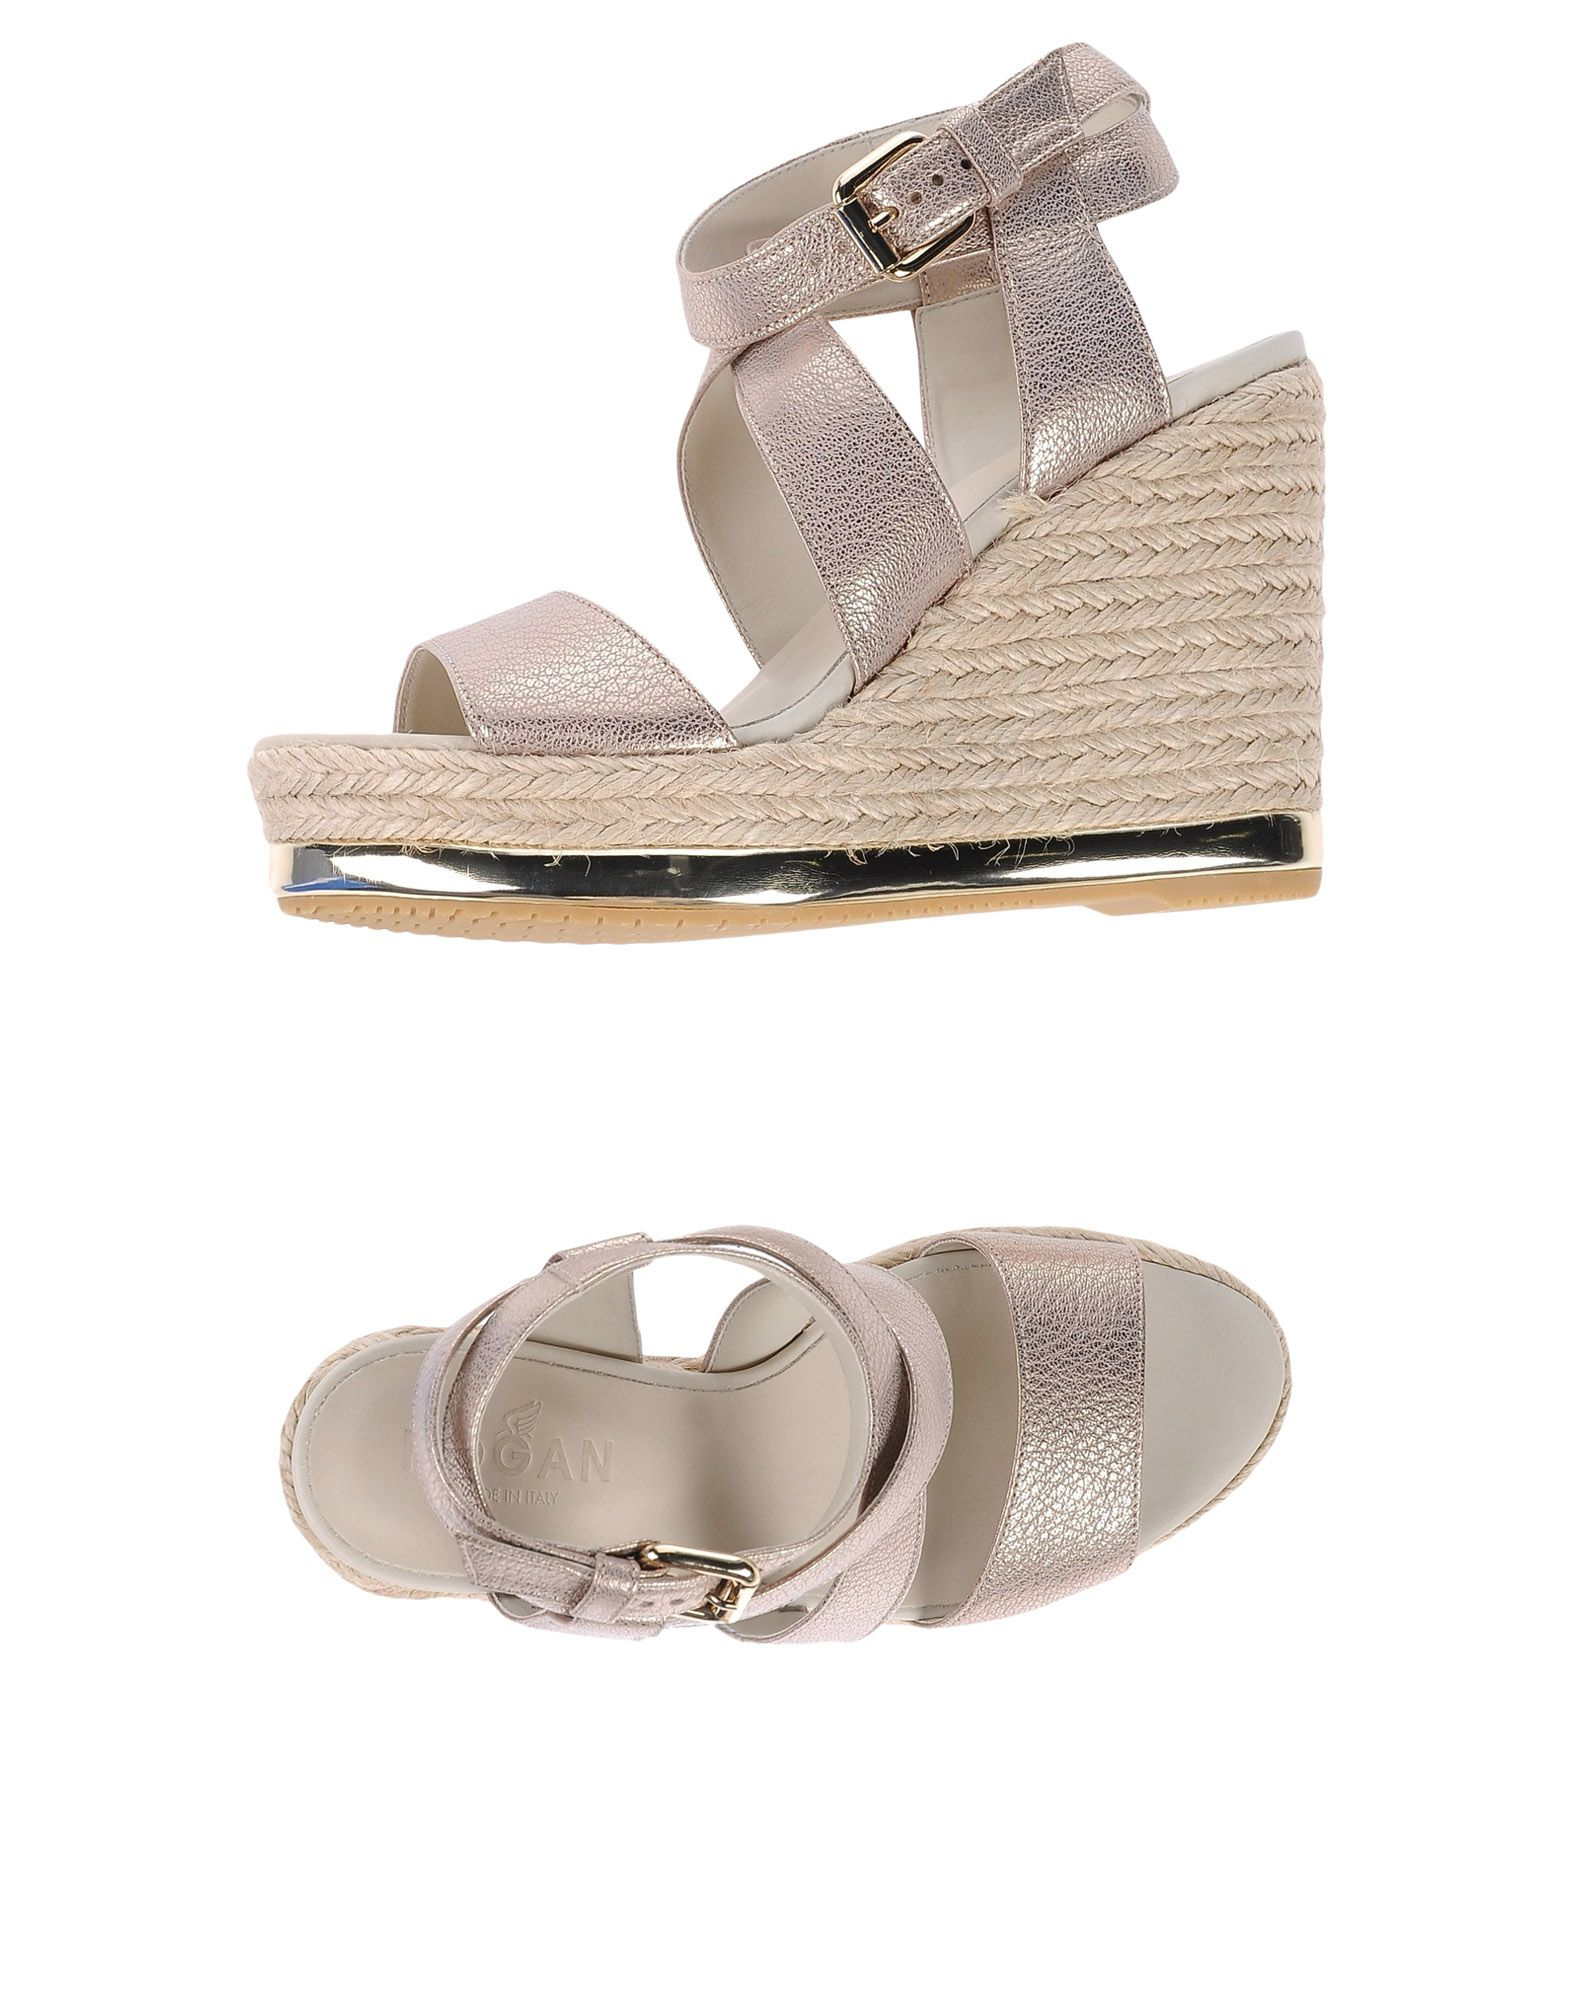 HOGAN Espadrilles. textured leather, laminated effect, no appliqués, solid color, wrapping straps closure, round toeline, leather lining, rubber sole, wedge heel, rope wedge, contains non-textile parts of animal origin. Soft Leather